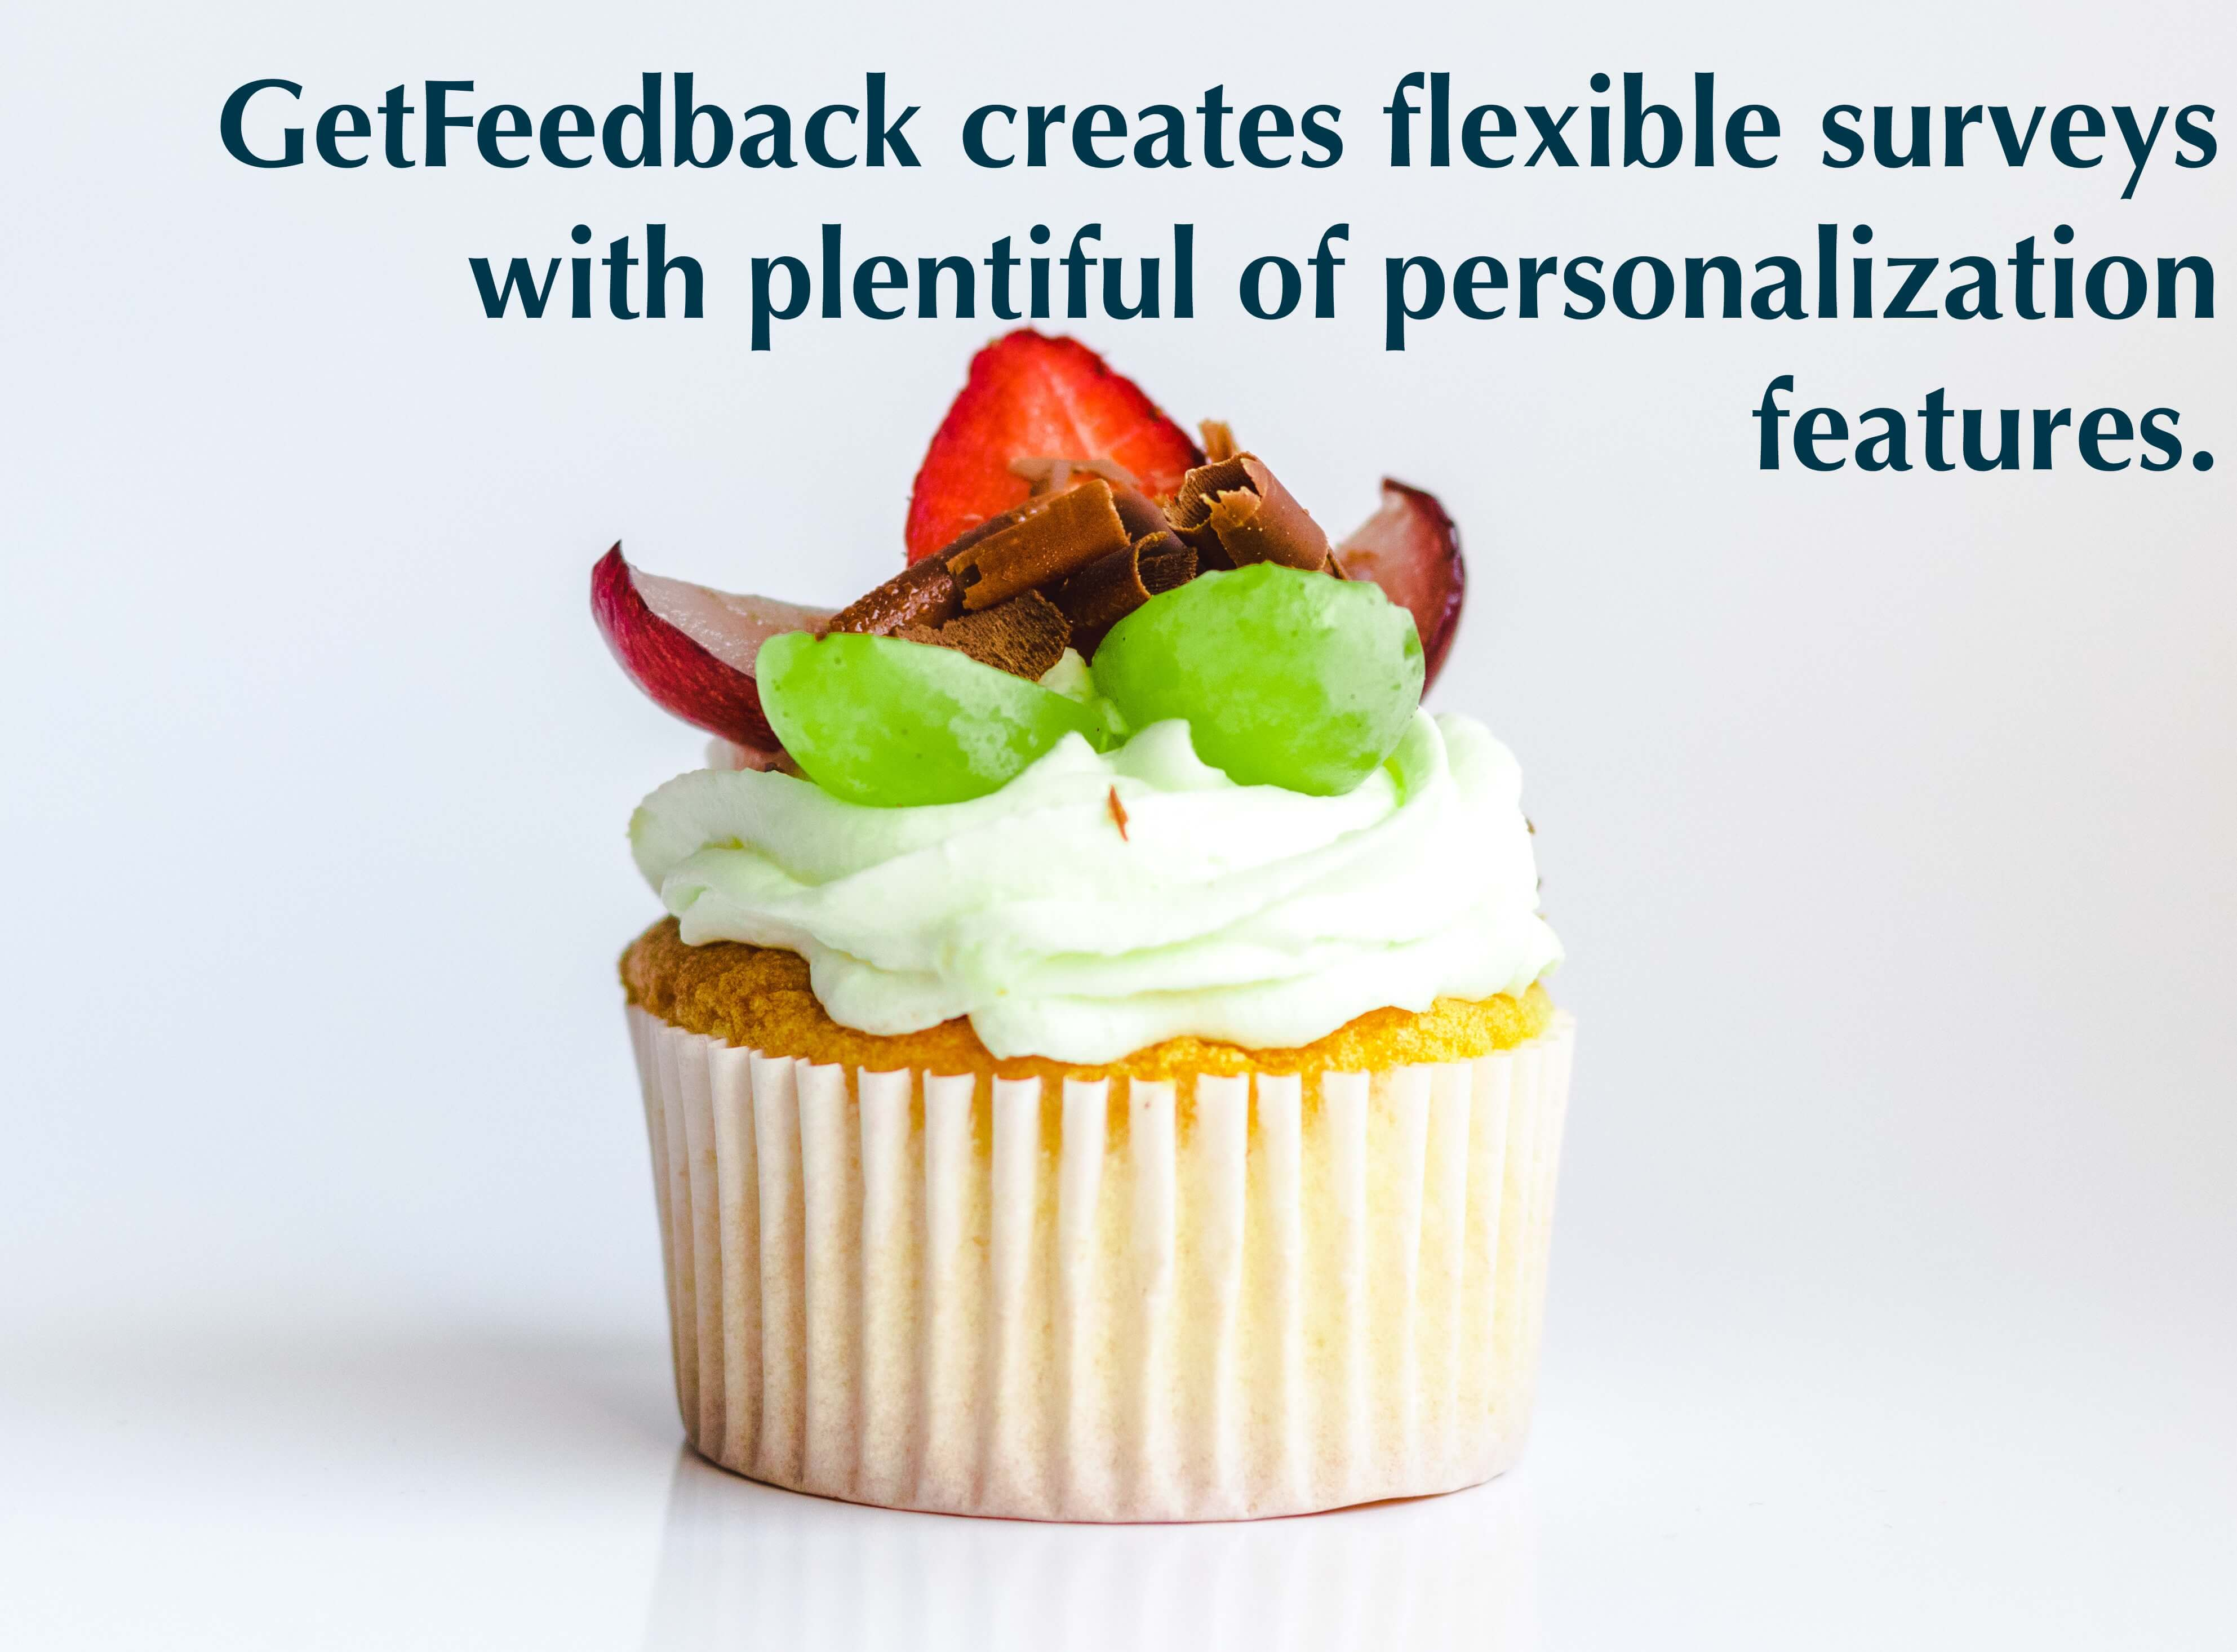 GetFeedback creates flexible surveys with plentiful of personalization features.